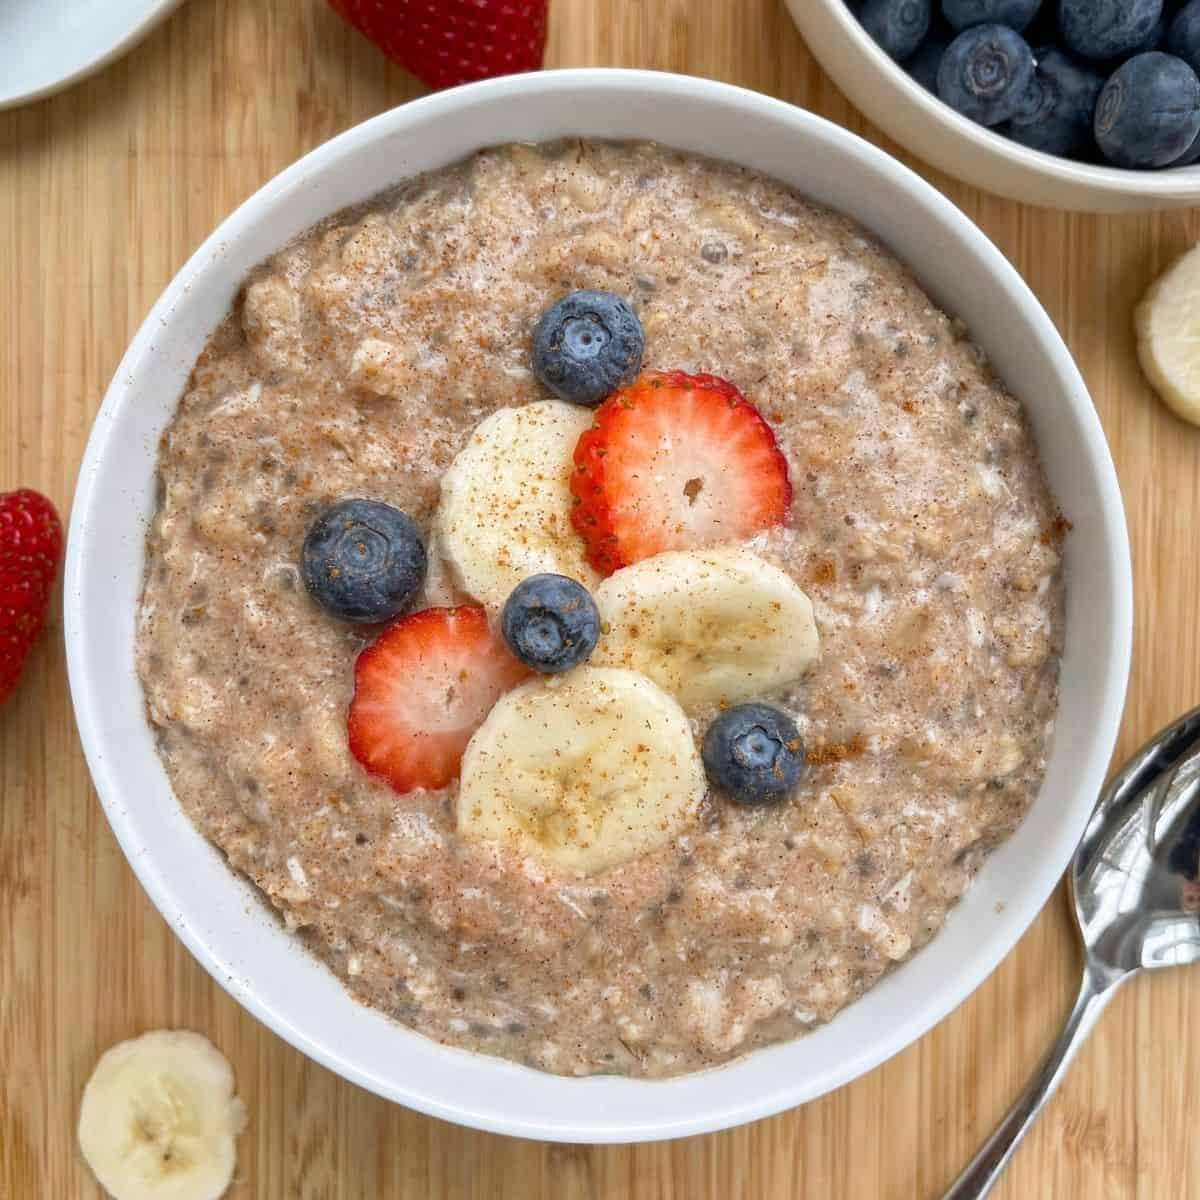 Best Ever thick, creamy, healthy high protein stove top oatmeal